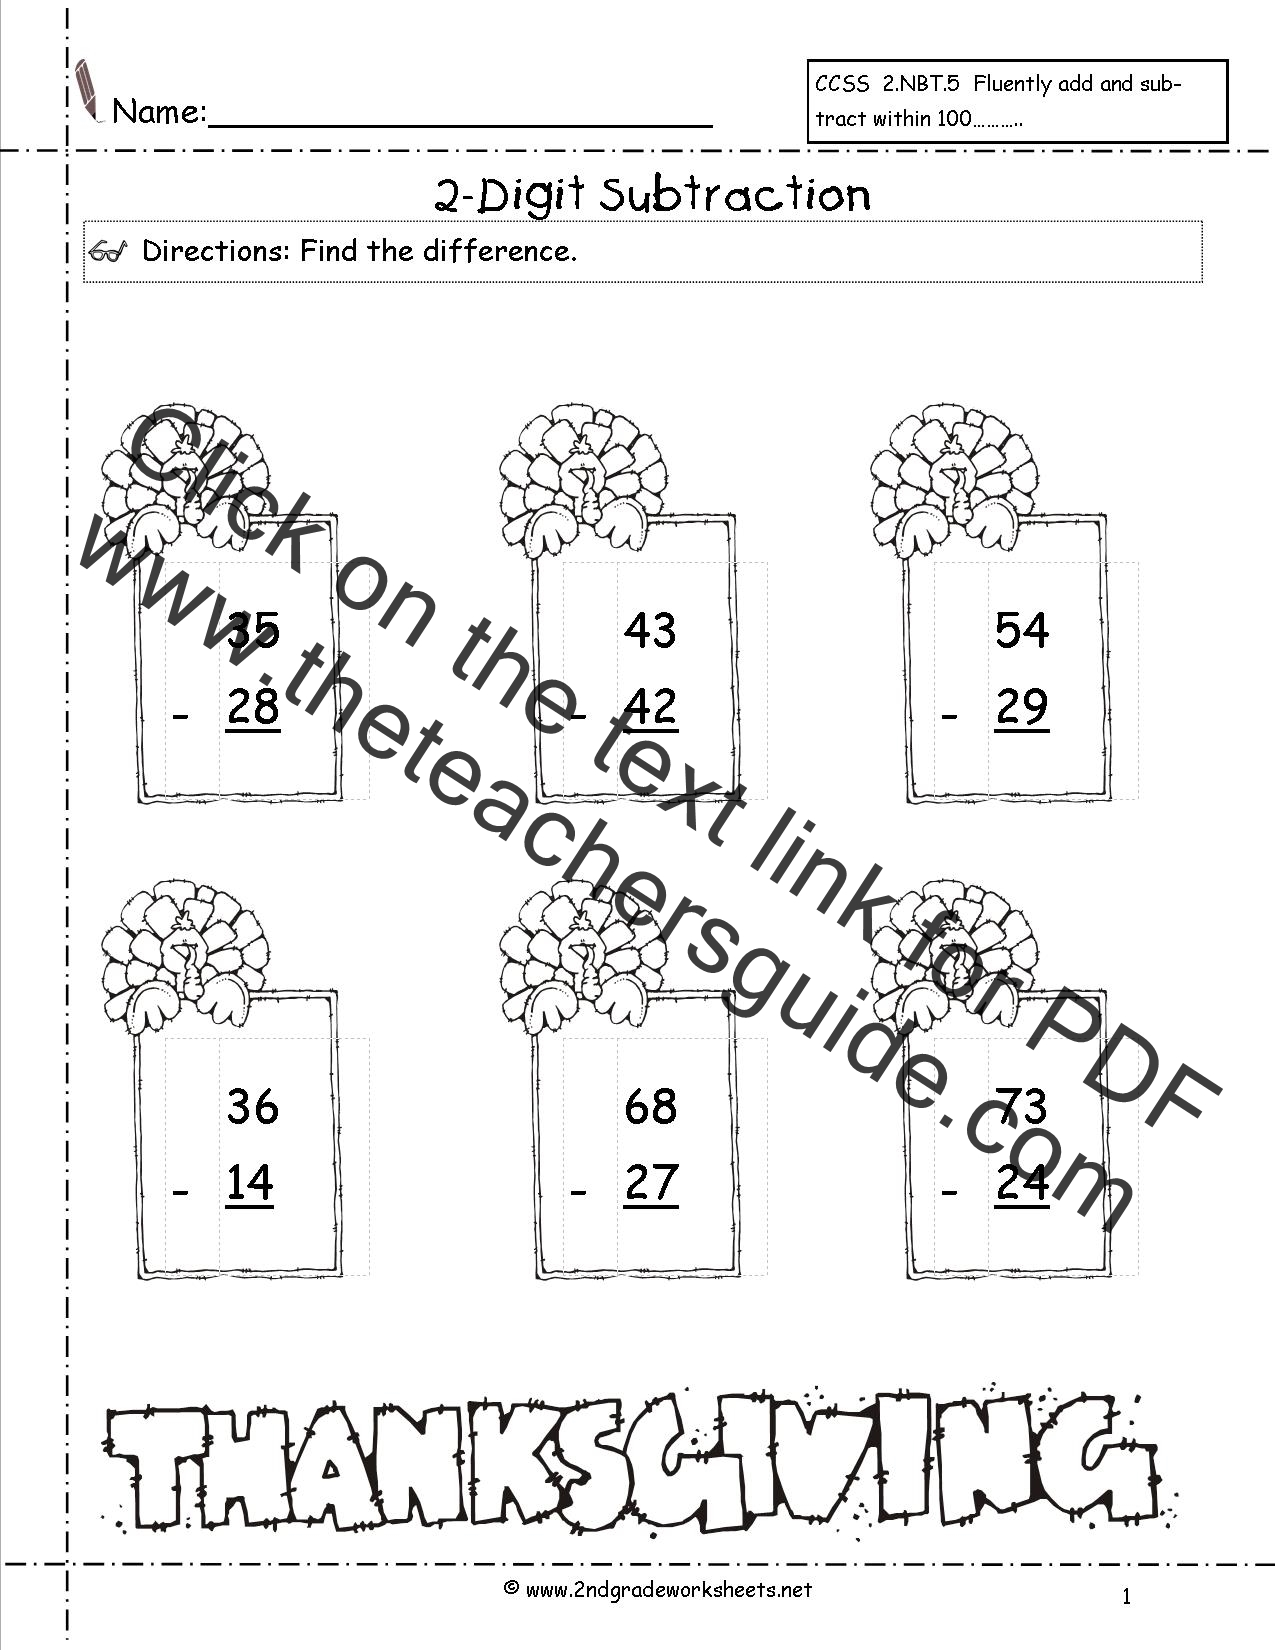 Thanksgiving Printouts and Worksheets – Thanksgiving Math Worksheets